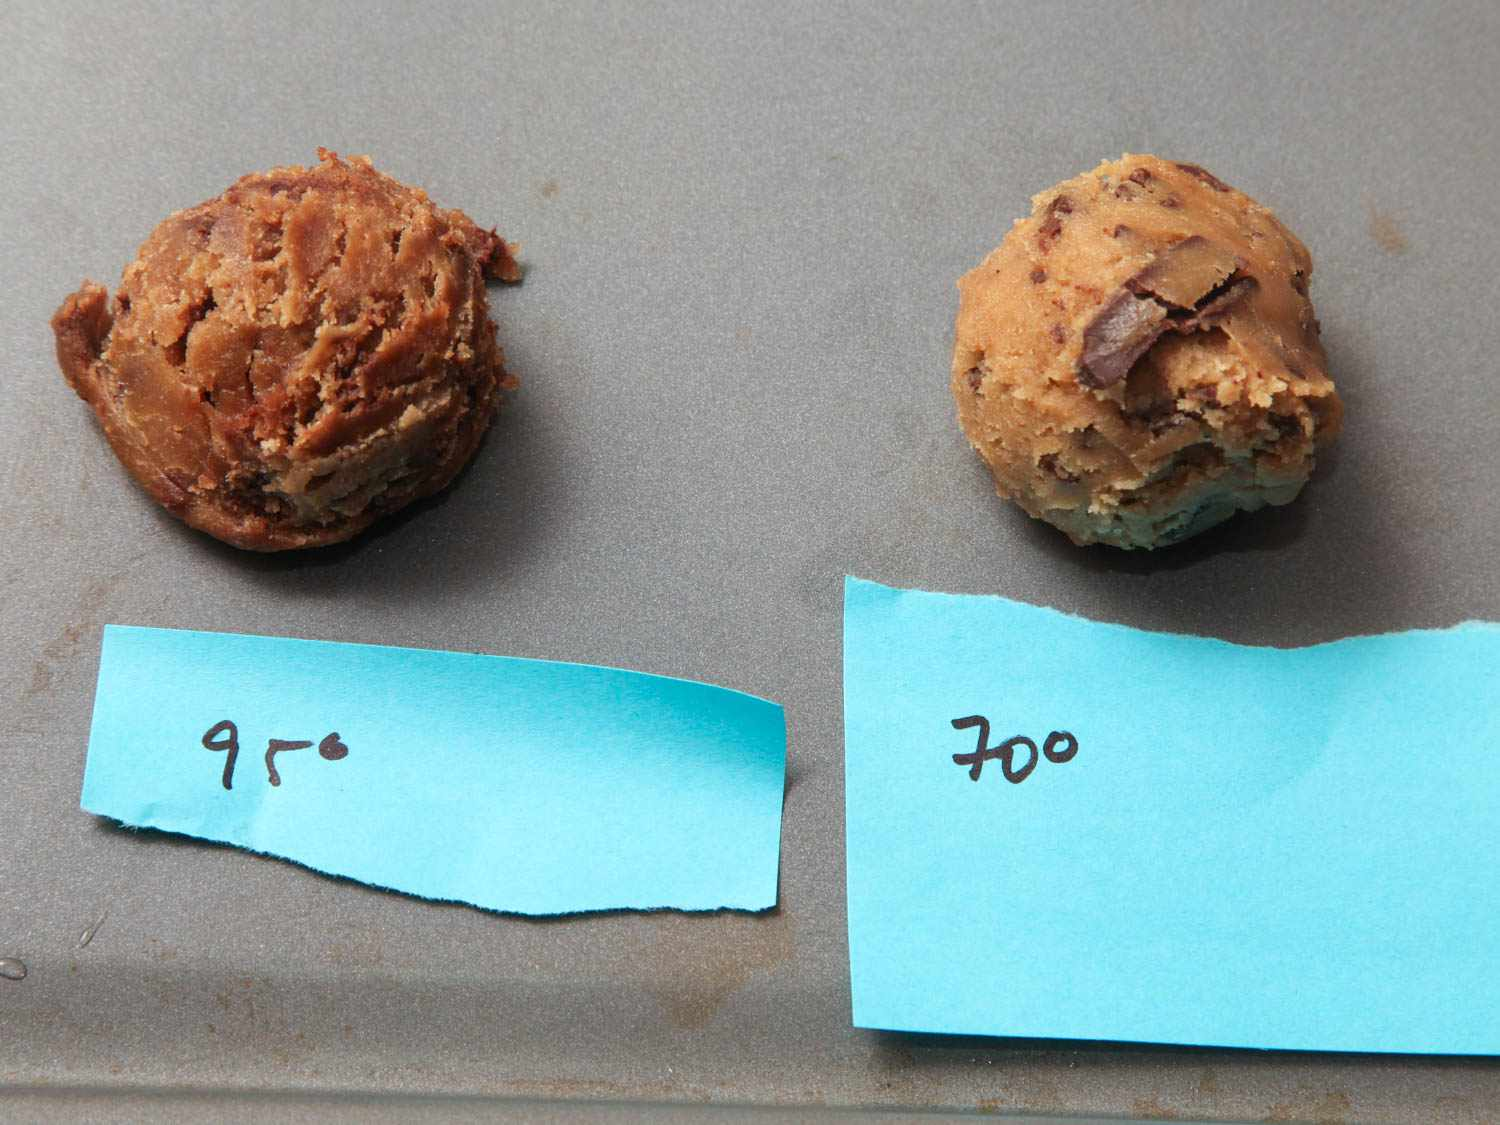 Side by side image of chocolate chip cookie dough showing the effect of mixing chocolate into dough heated to 95F (left) versus room temperature (right).